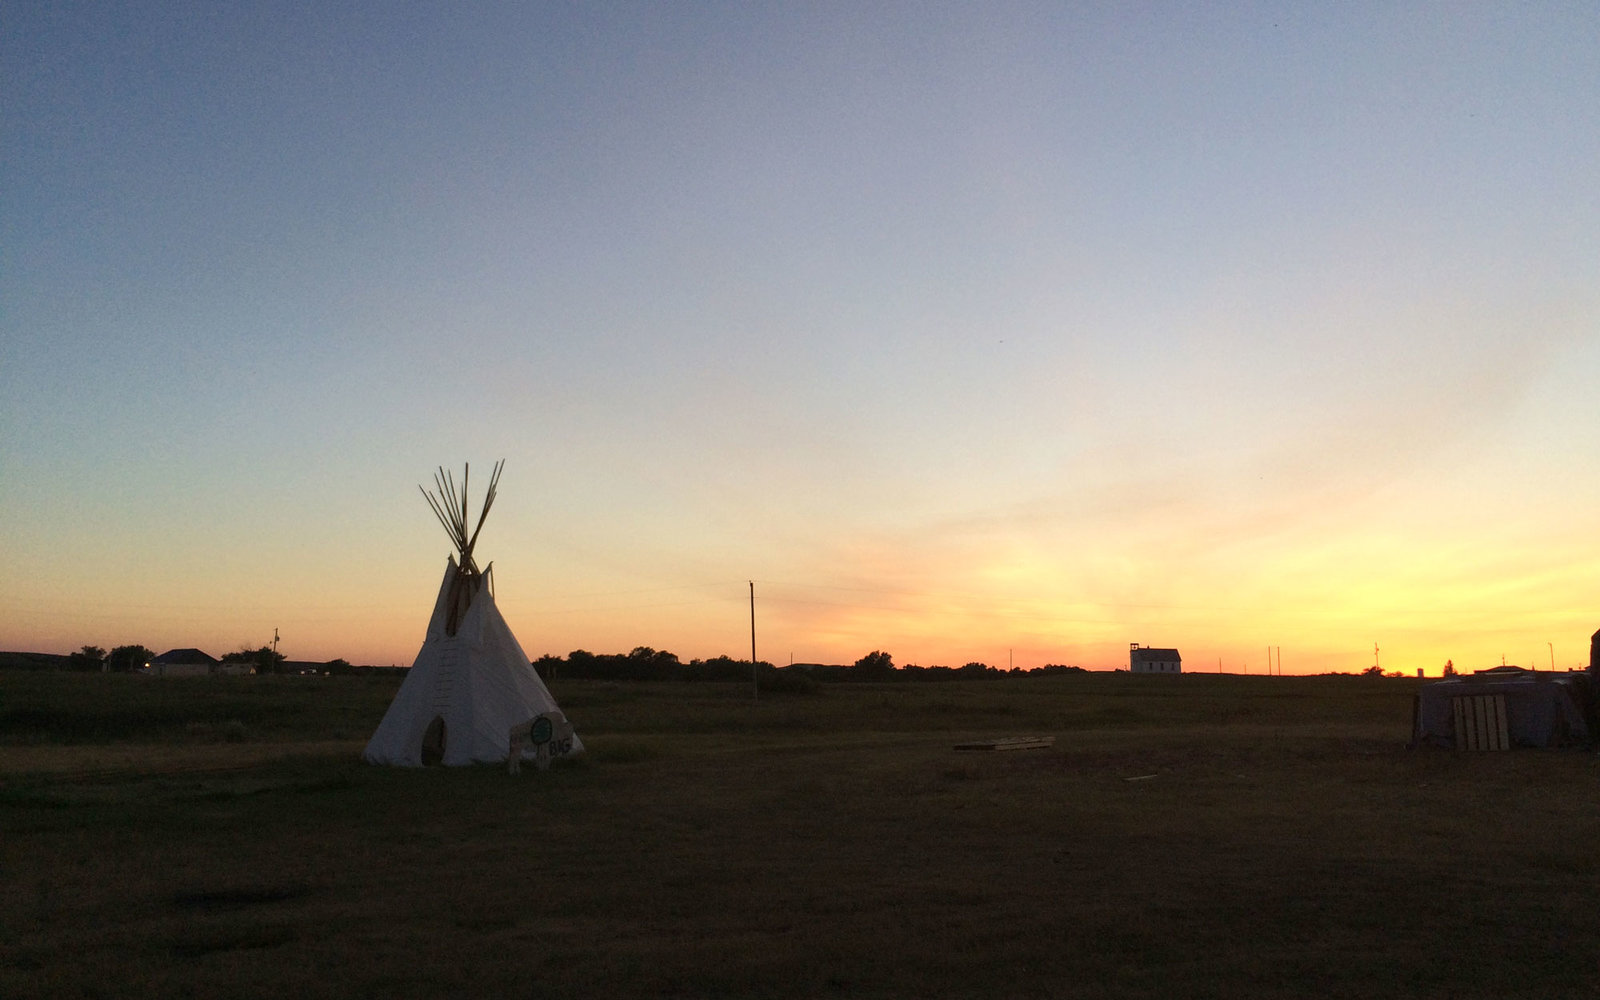 Cheyenne River Sioux Tribe Reservation, South Dakota